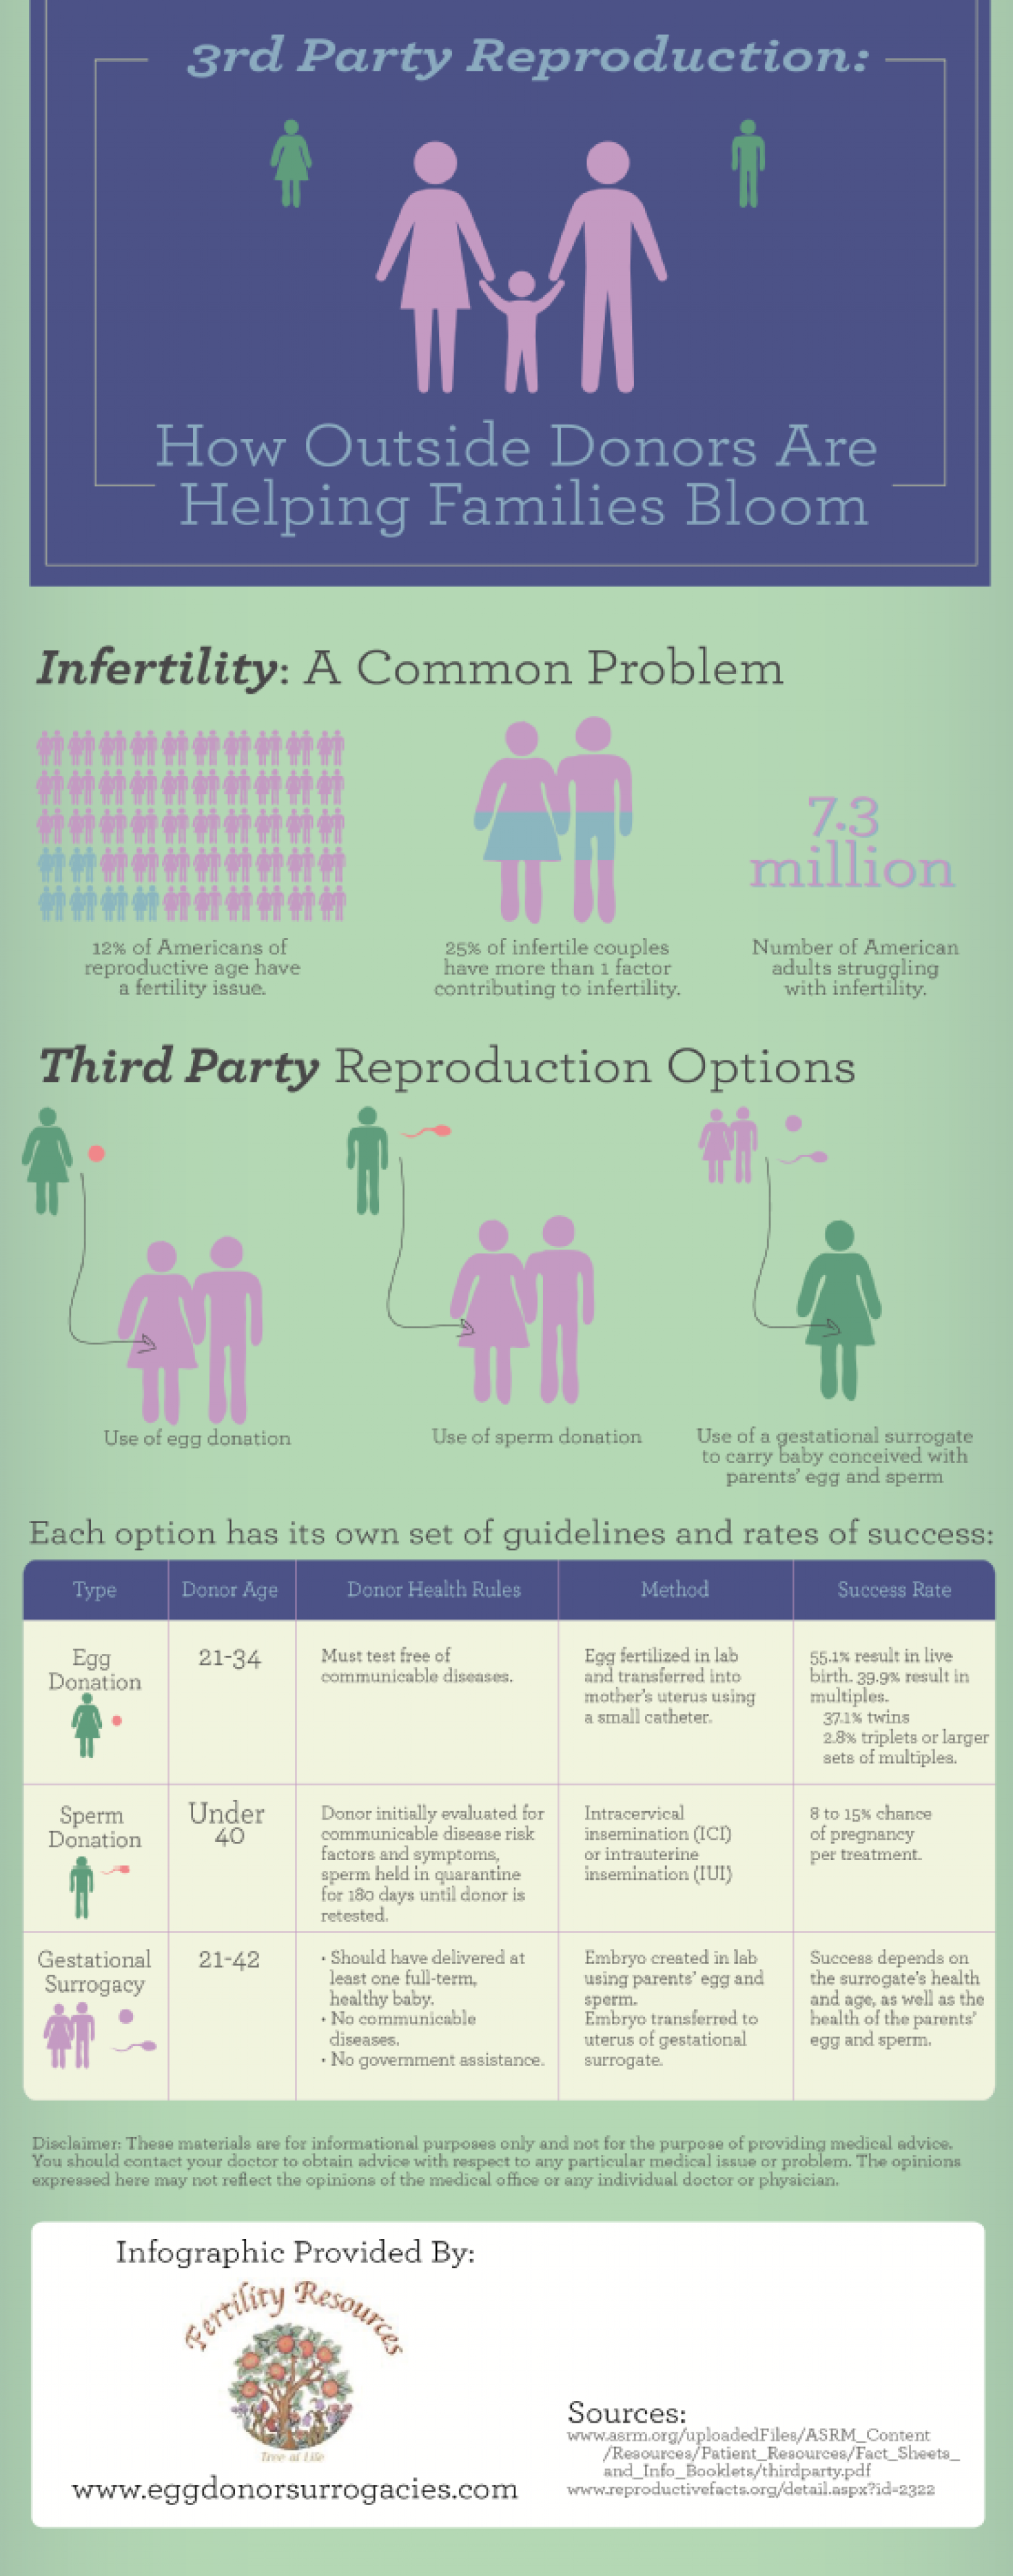 3rd Party Reproduction: How Outside Donors Are Helping Families Bloom Infographic